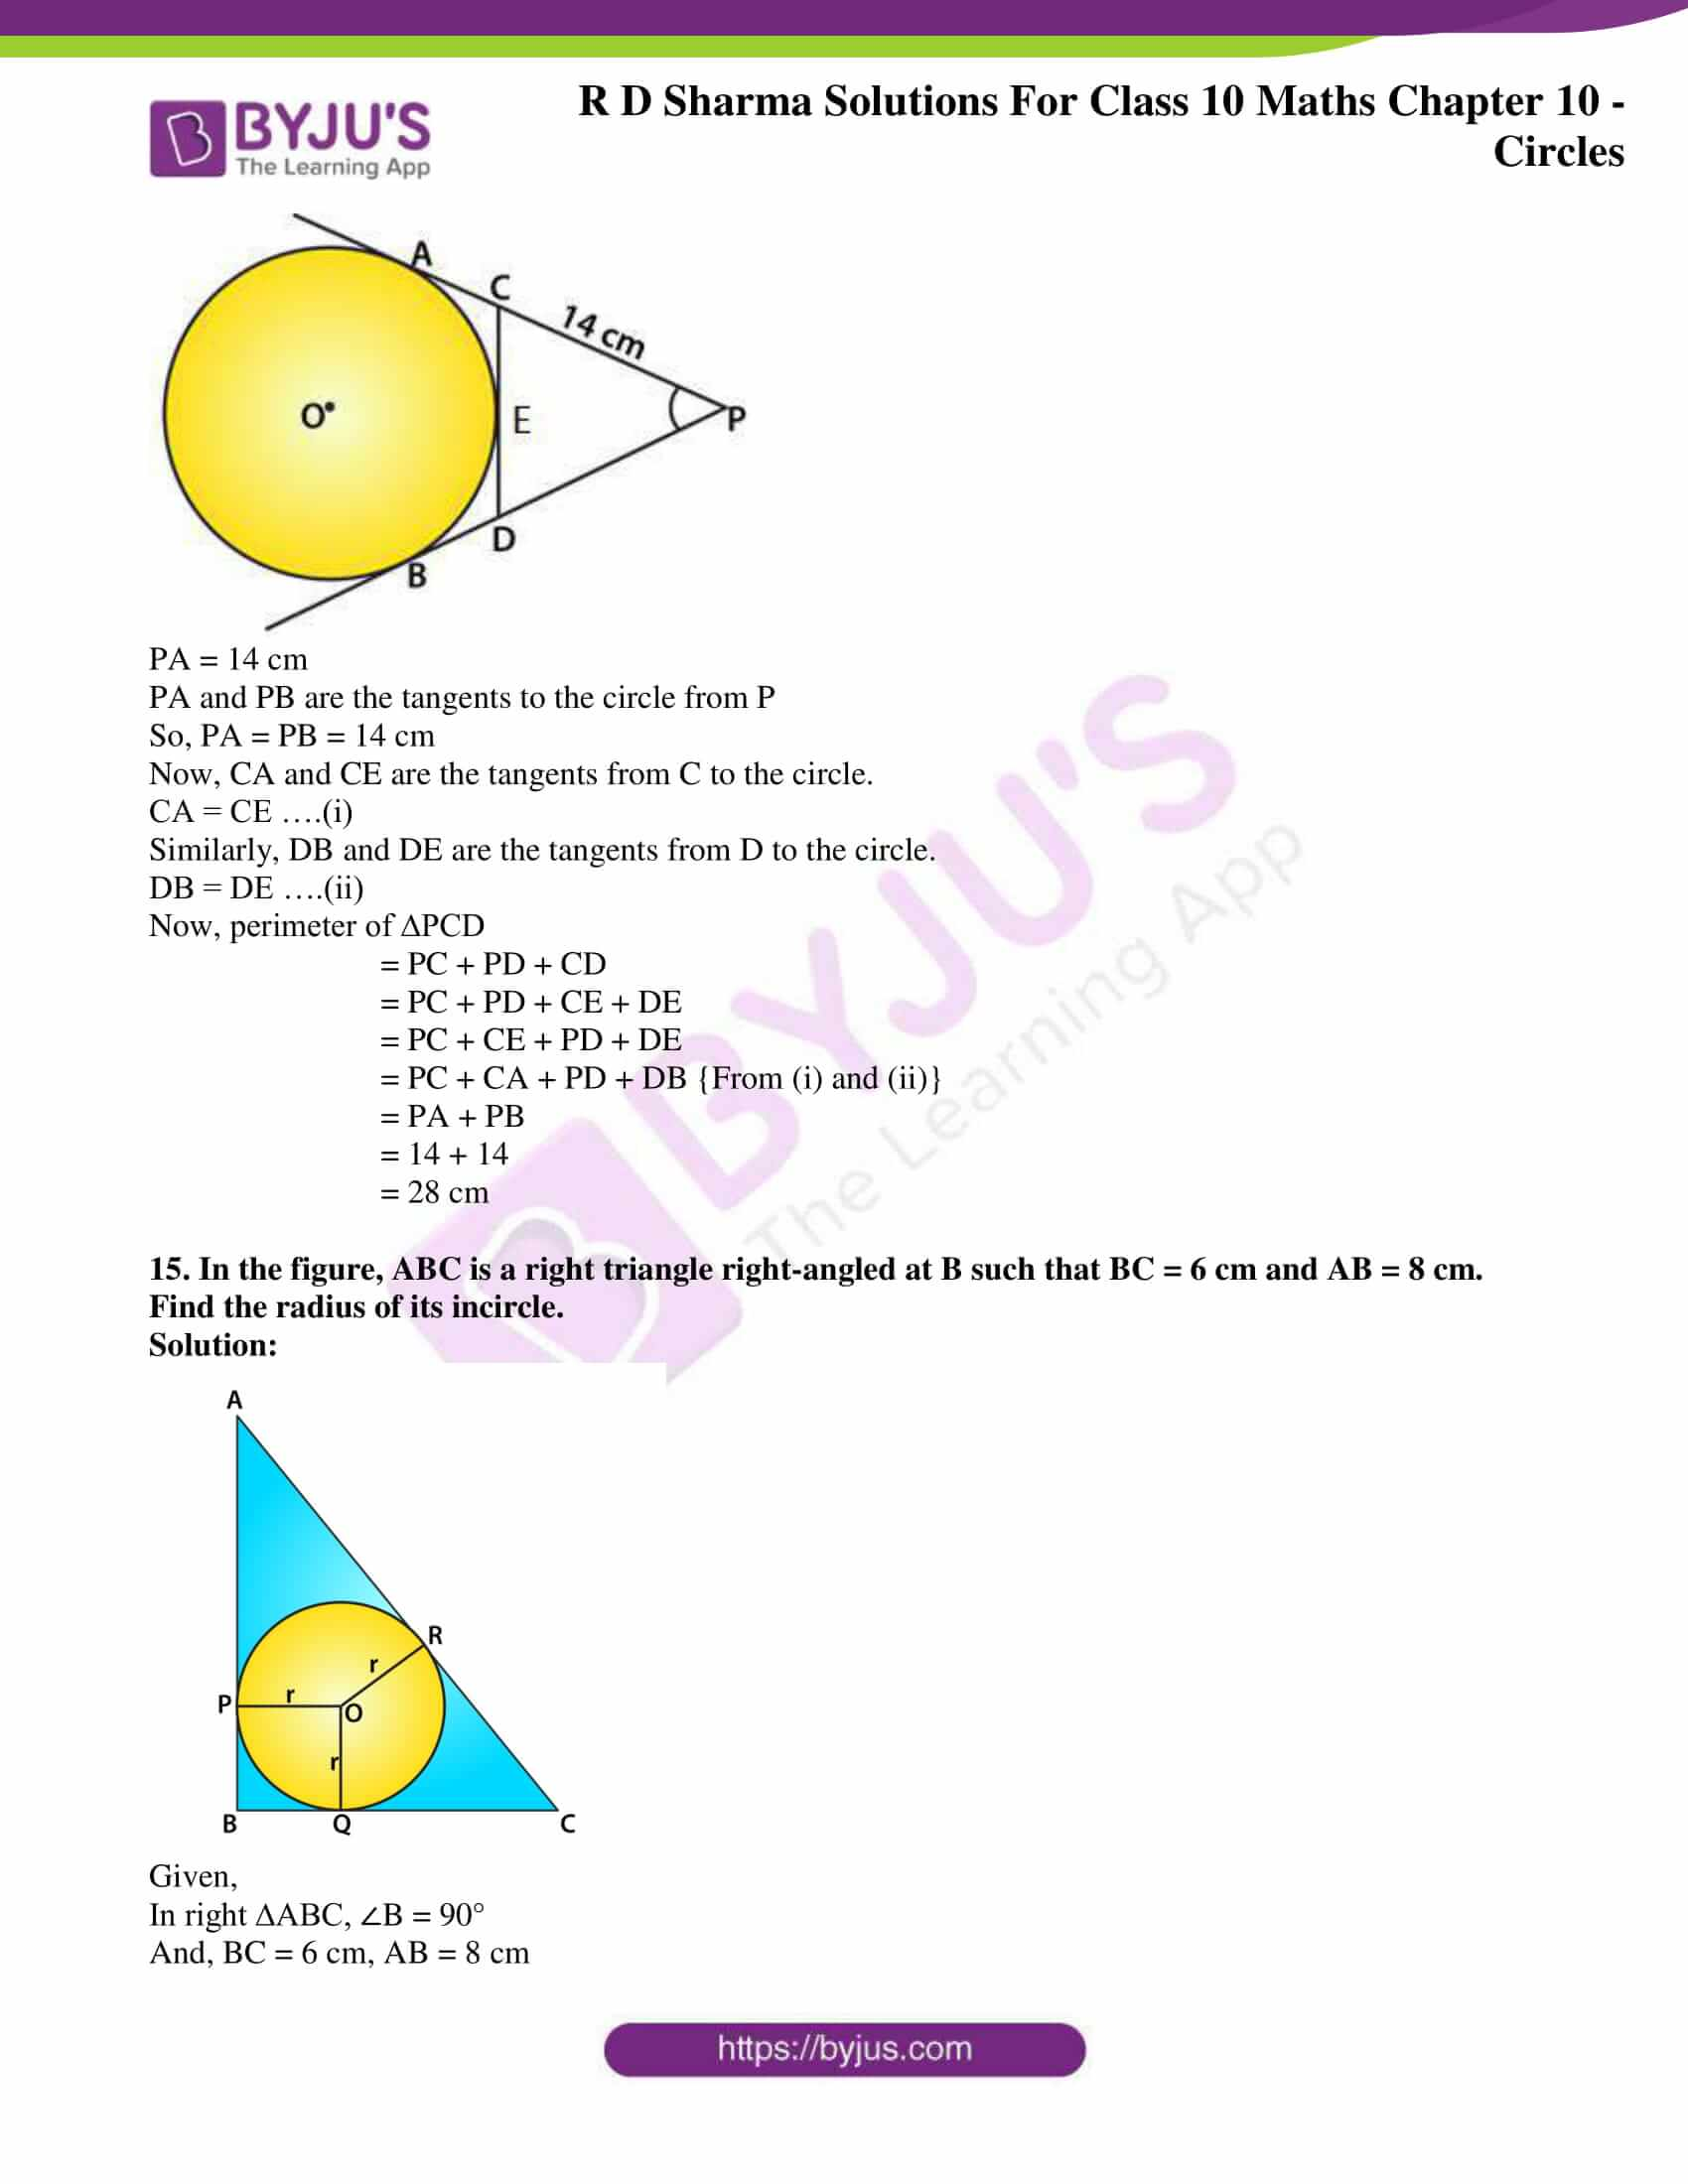 rd sharma class 10 chapter 10 circles solutions exercise 2 10